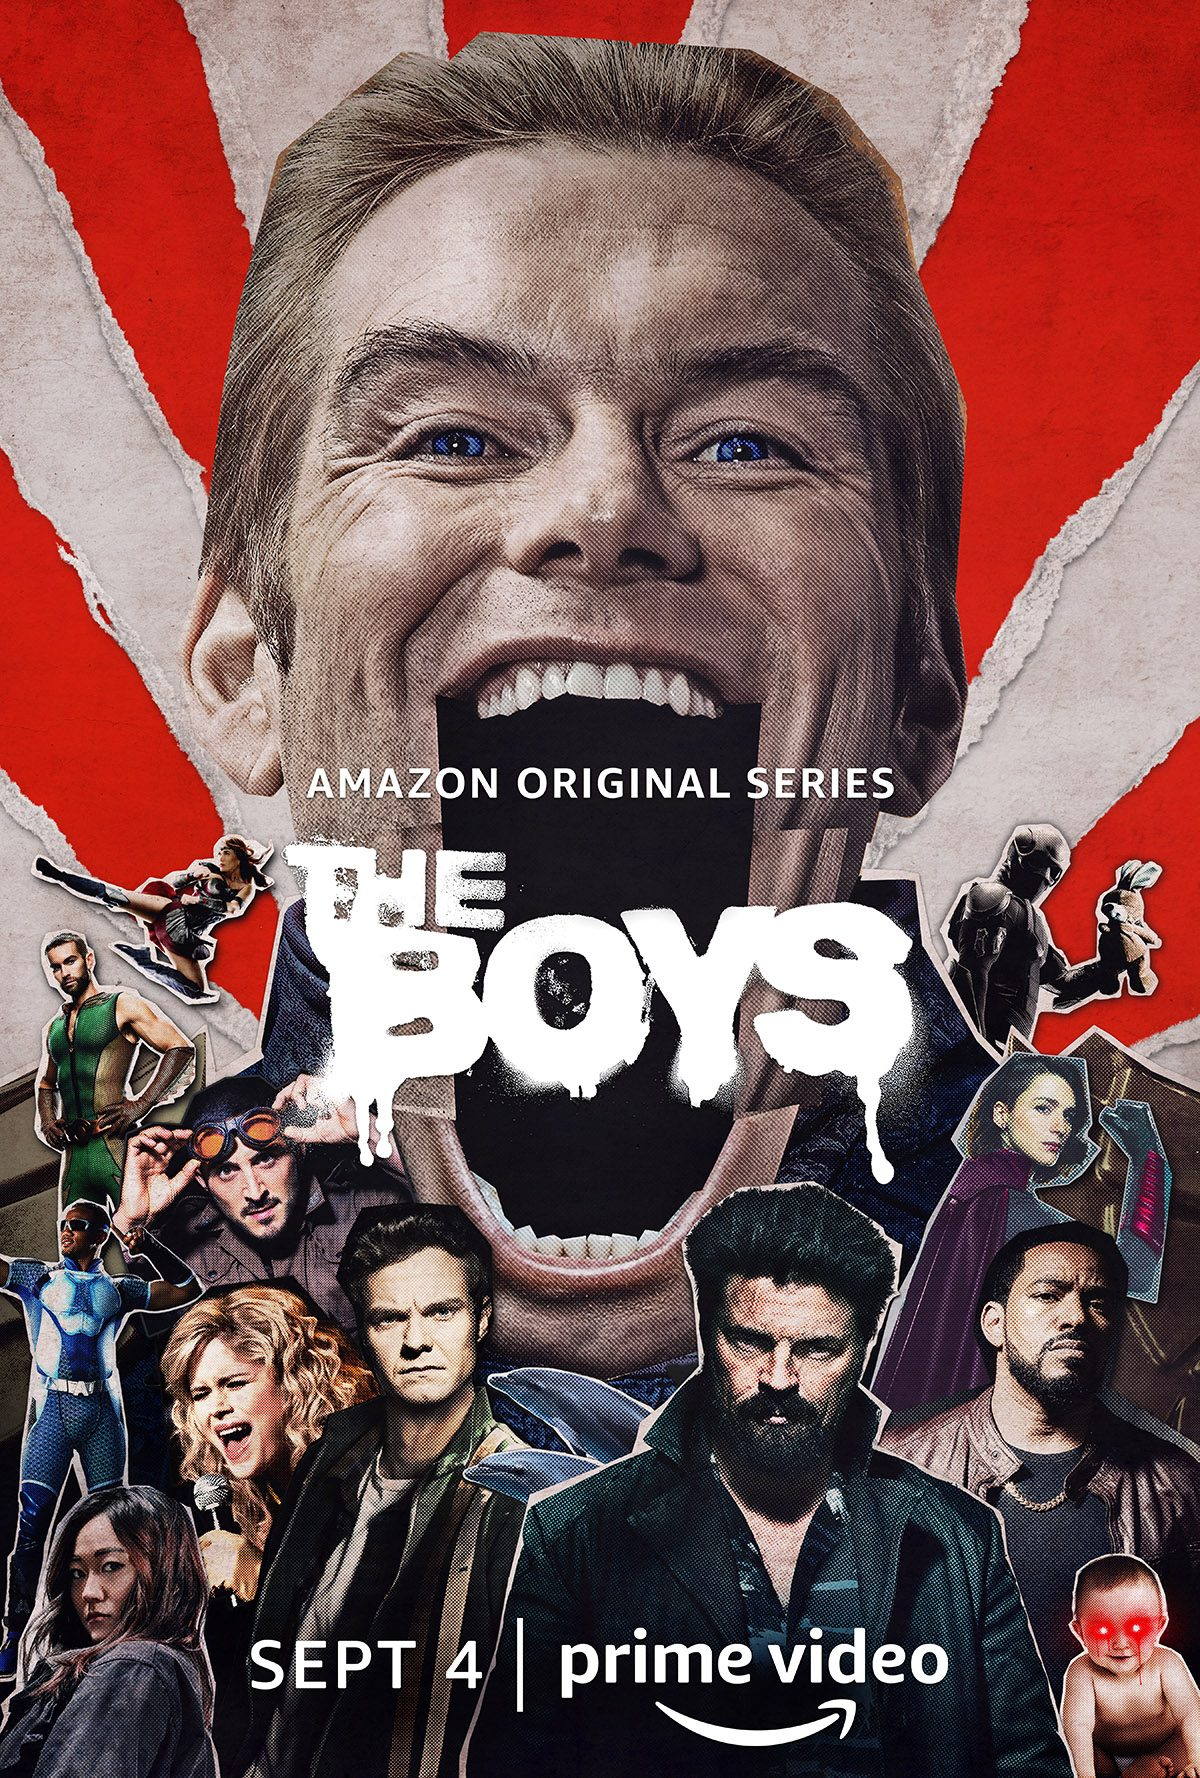 Serie The Boys Streaming : serie, streaming, Season, Release, Cast,, Trailer,, Spoilers, Radio, Times